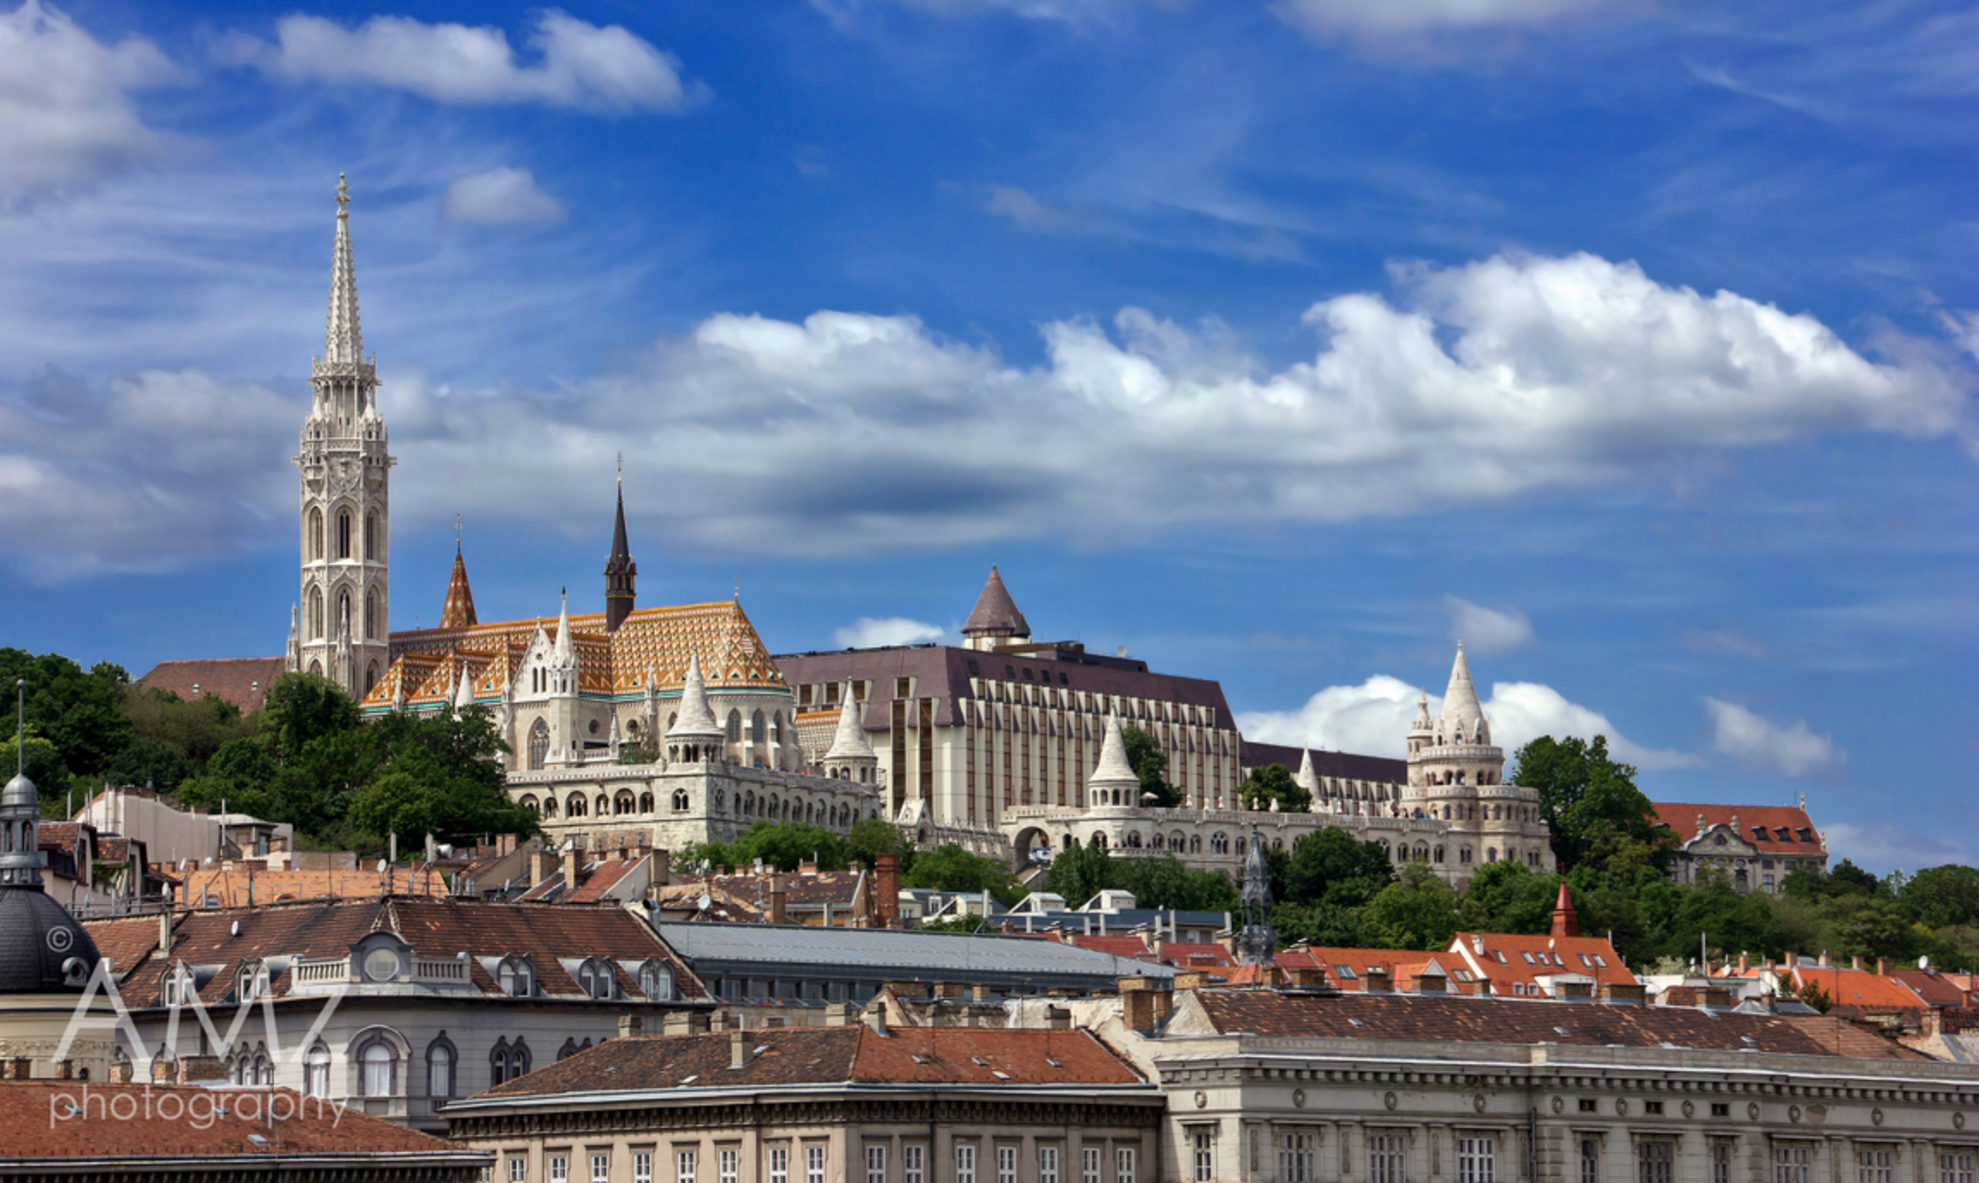 A guide for the First District of Budapest